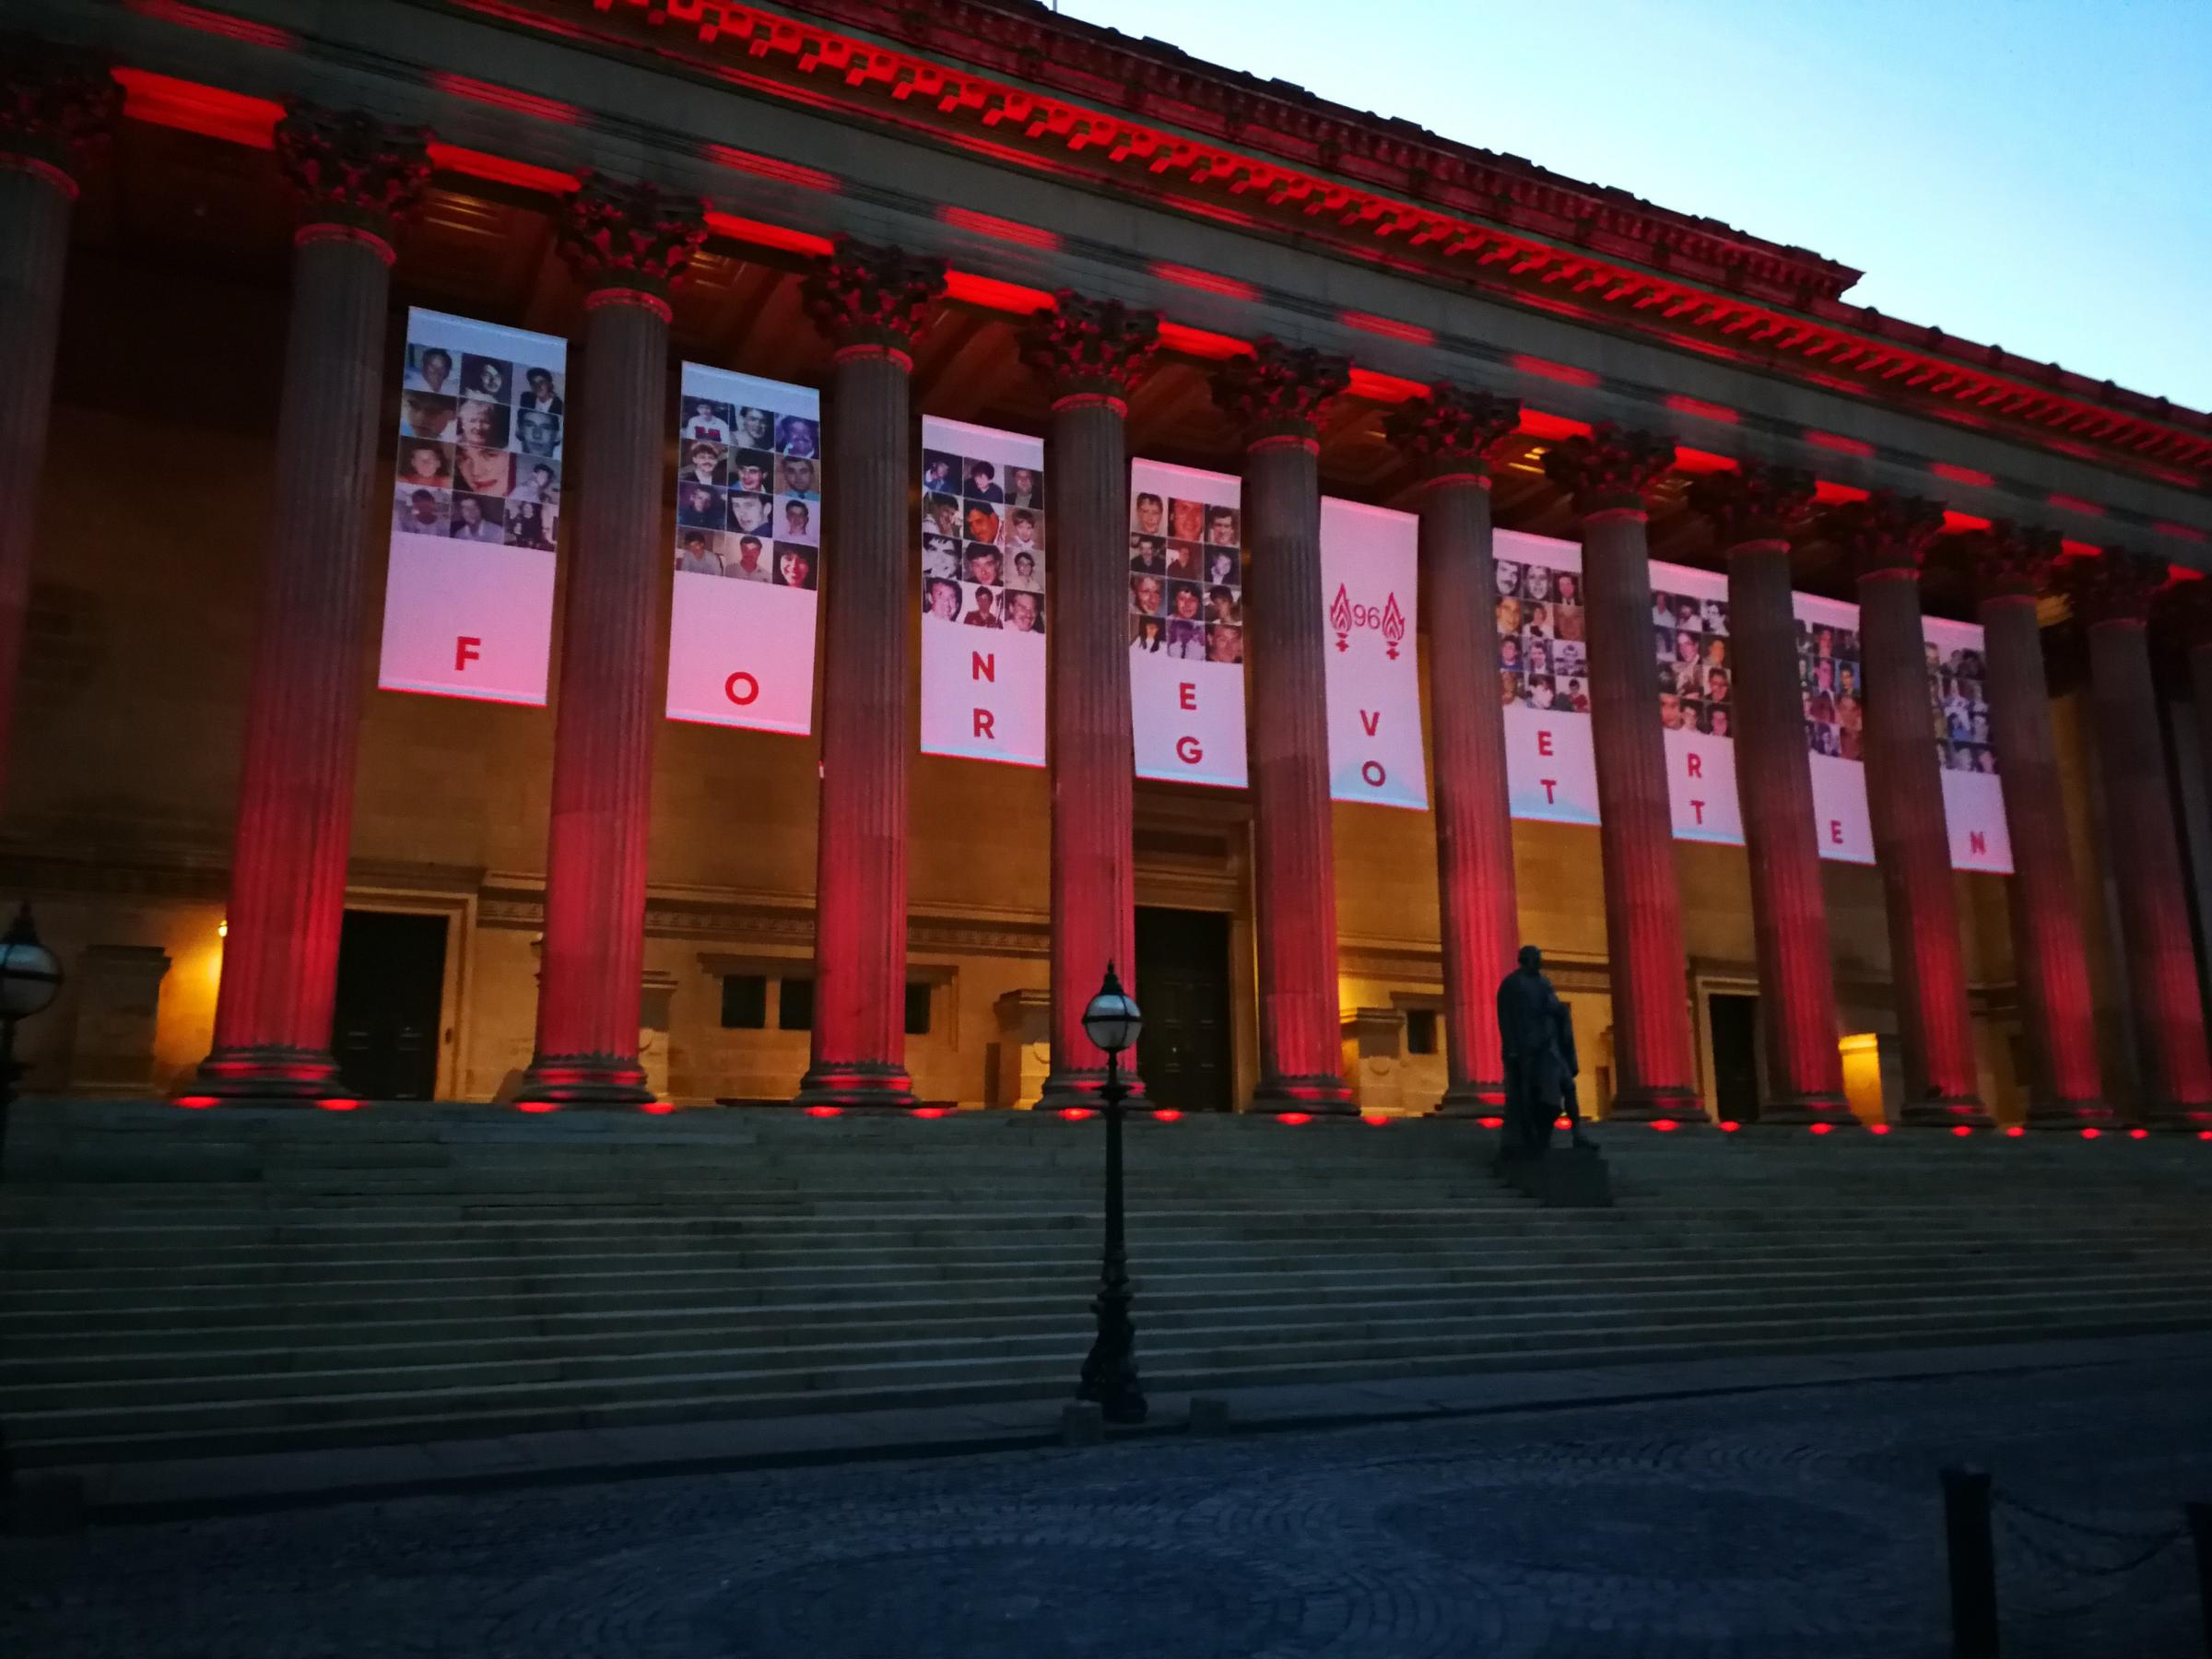 Tributes to the 96 victims of the Hillsborough disaster have gone in display in Liverpool. Credit Liverpool City Council